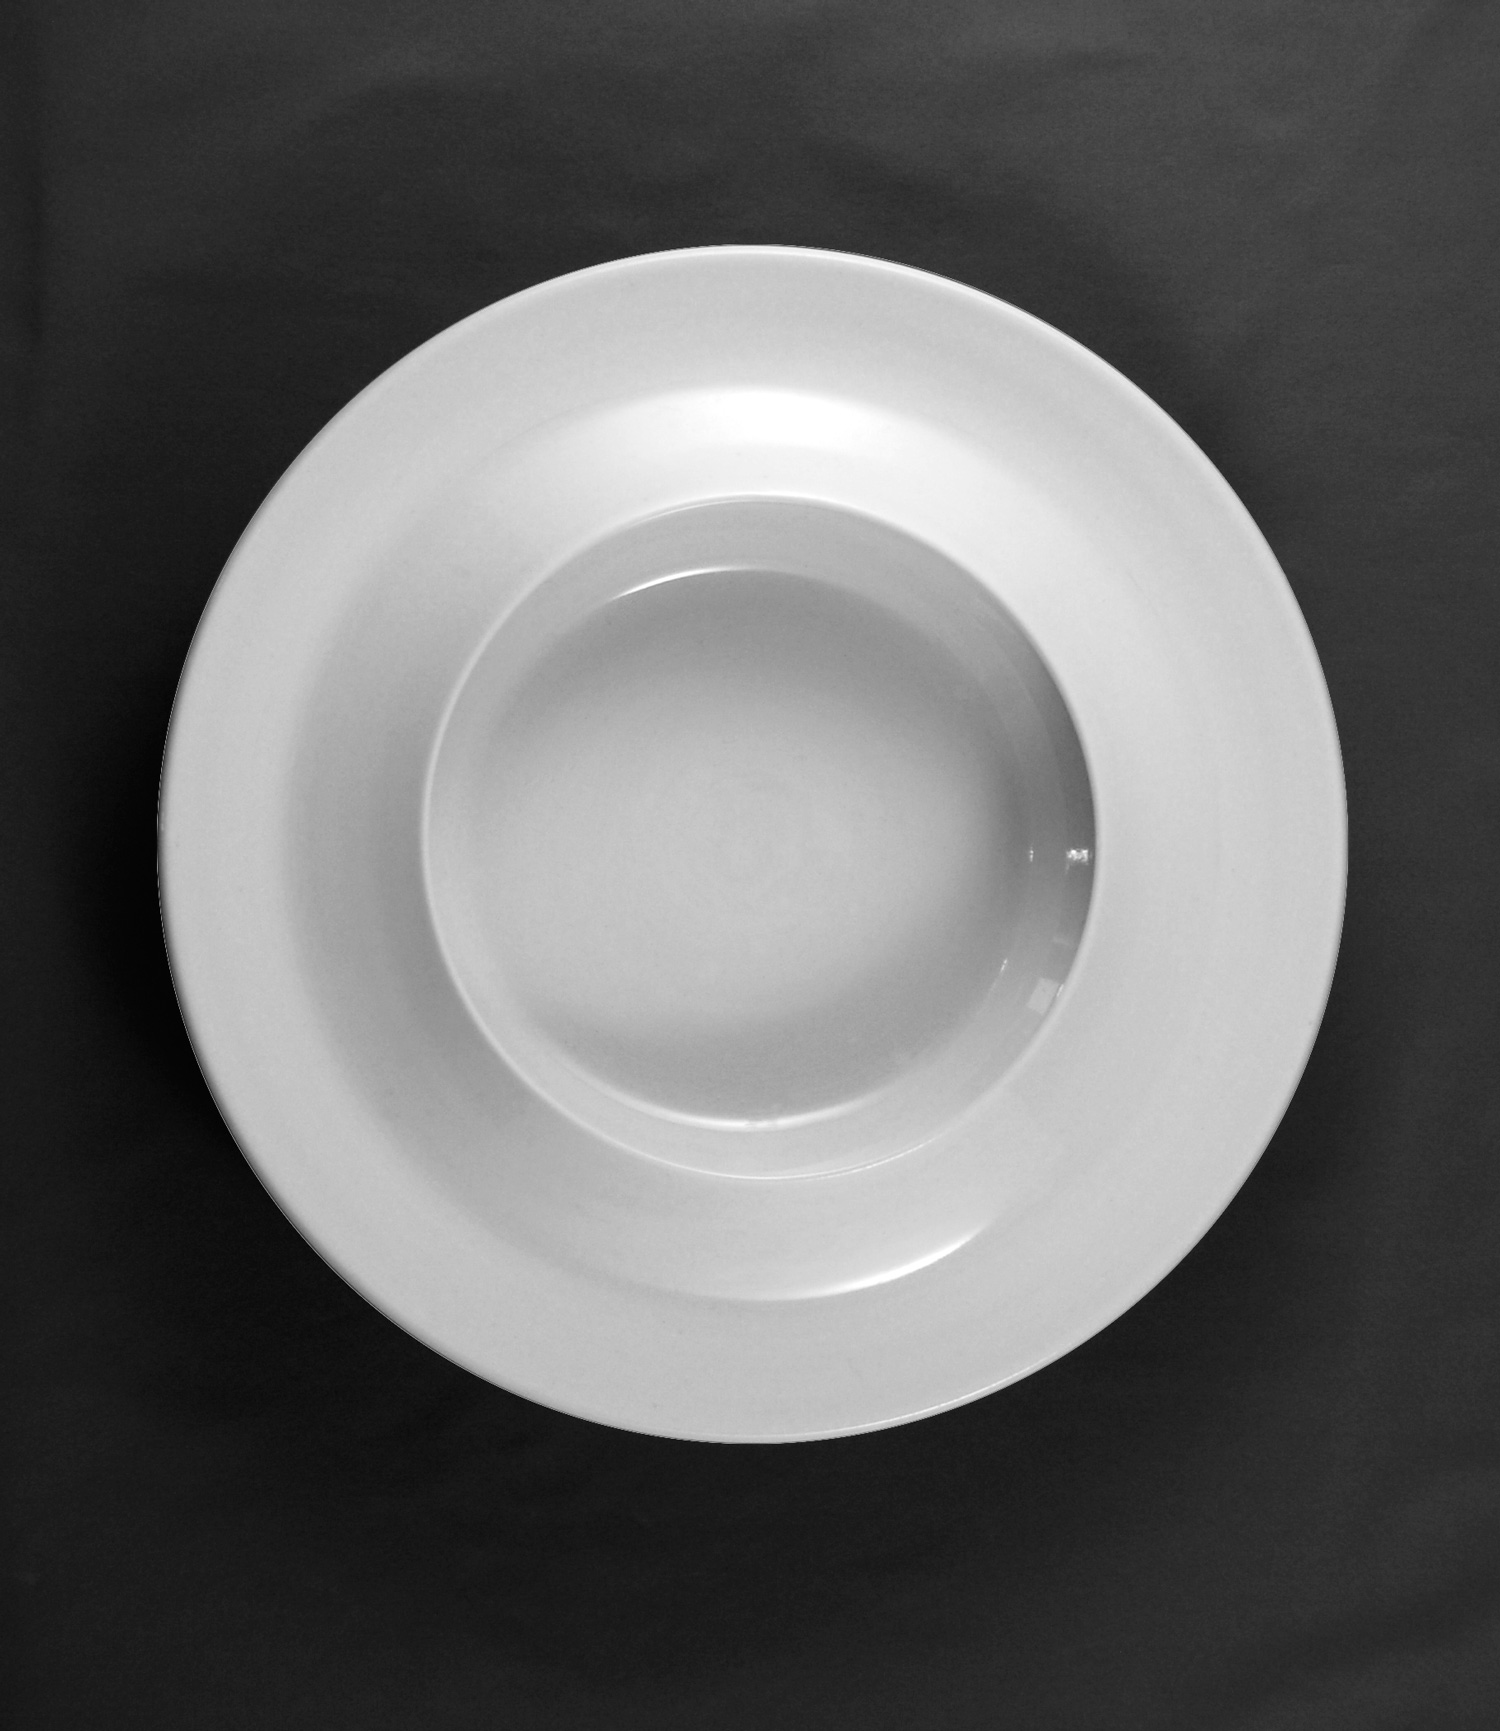 Bowl-plate for pastas viewed from top